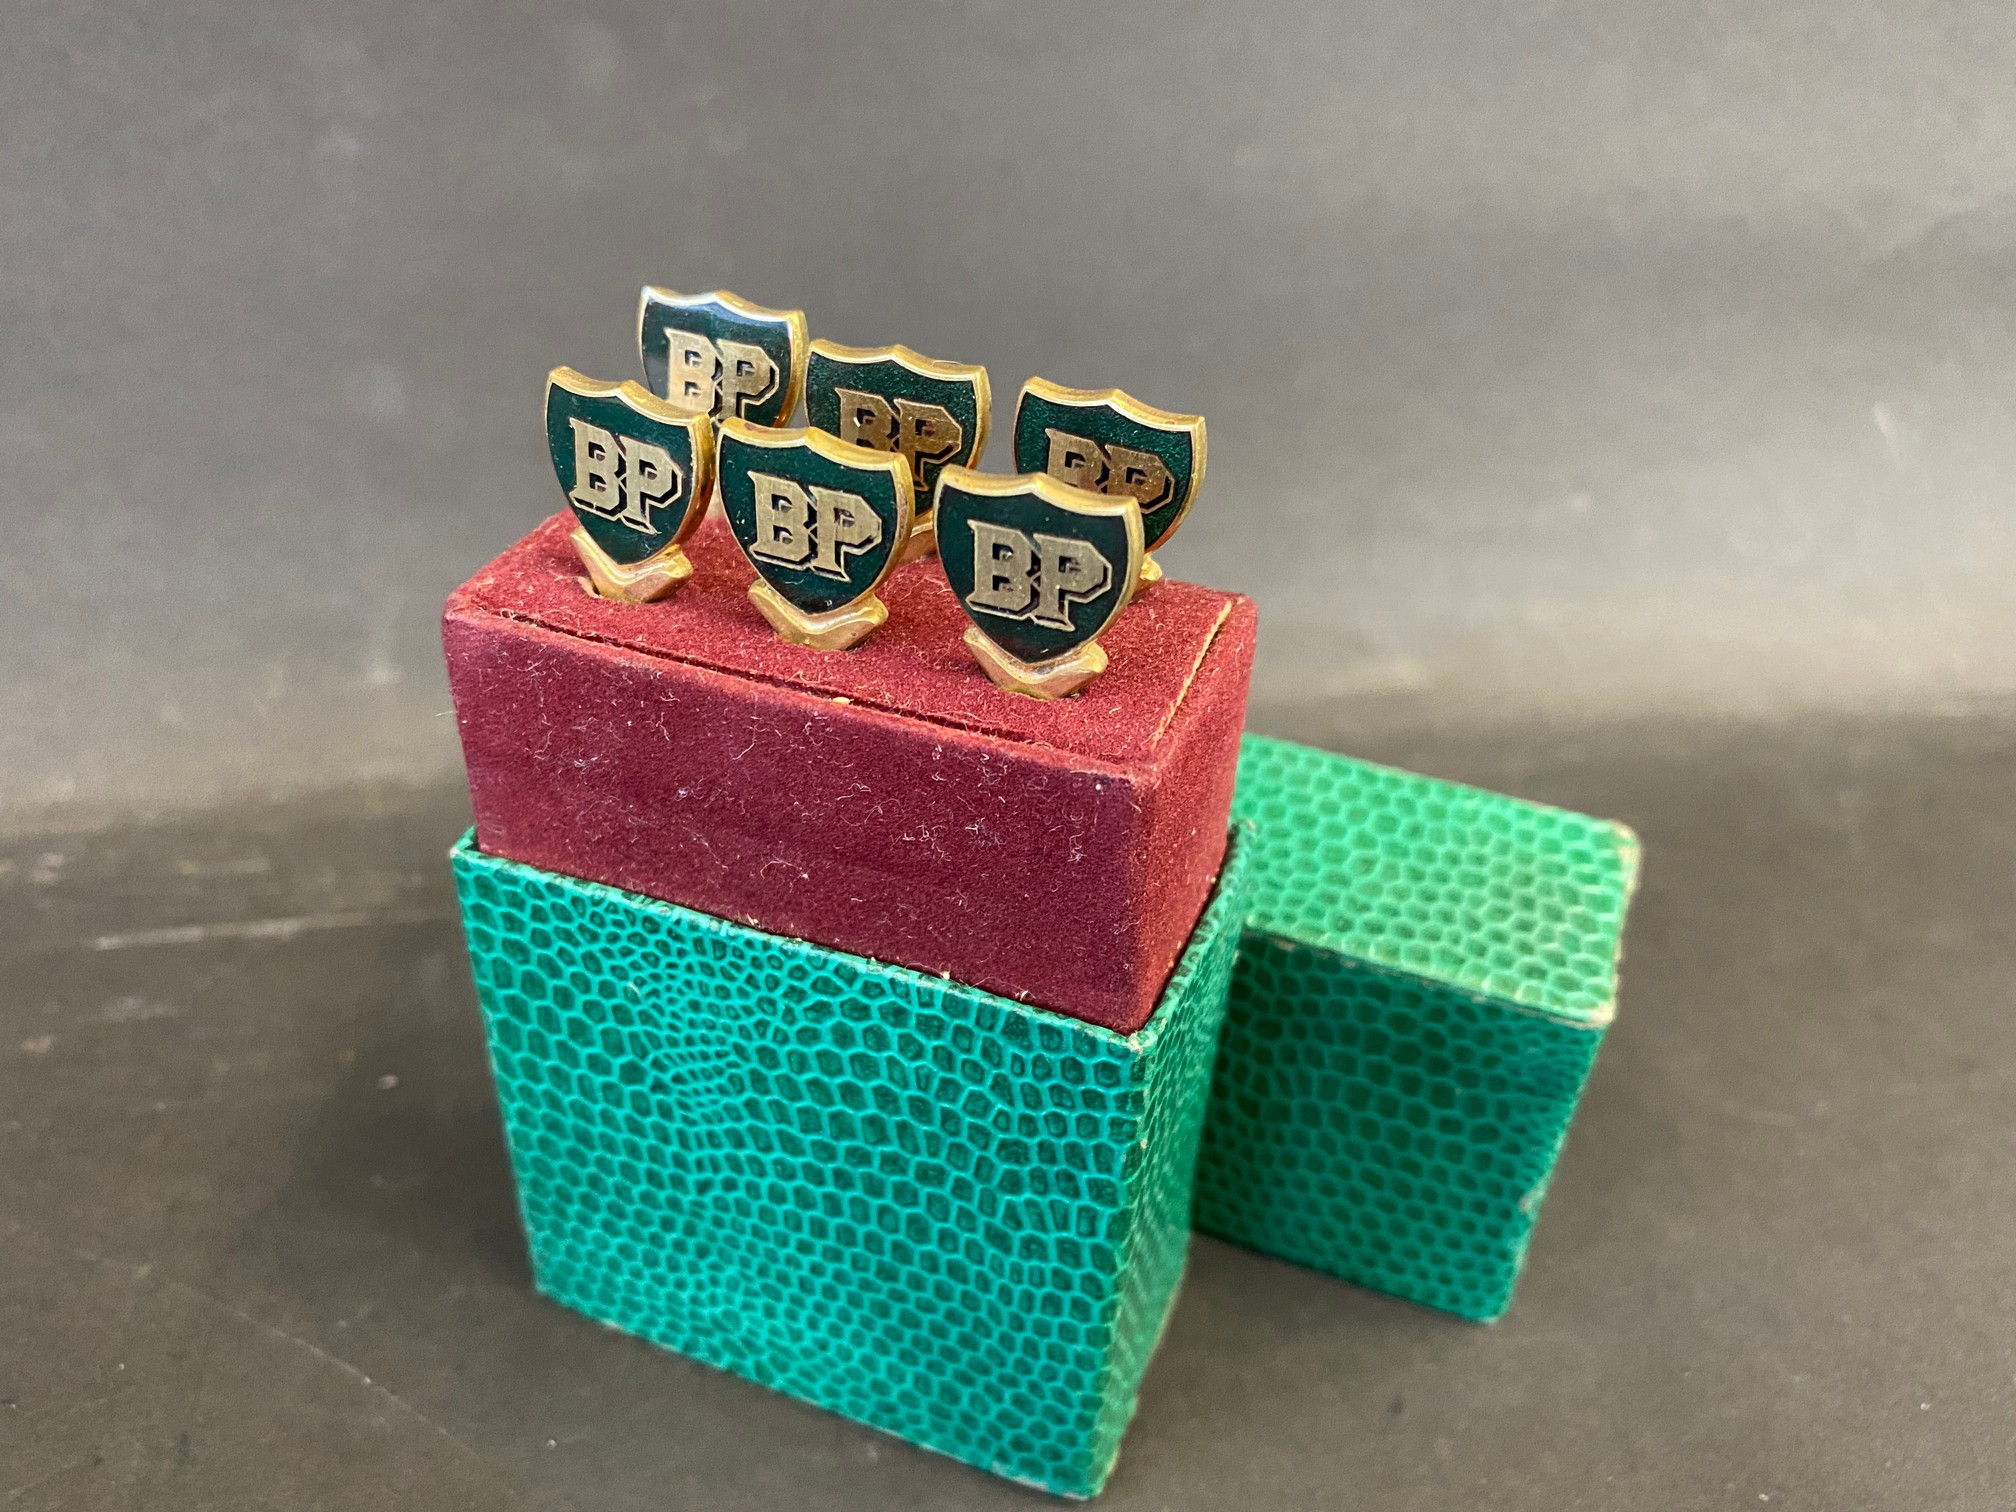 An unusual and complete boxed set of six B.P. cocktail sticks.